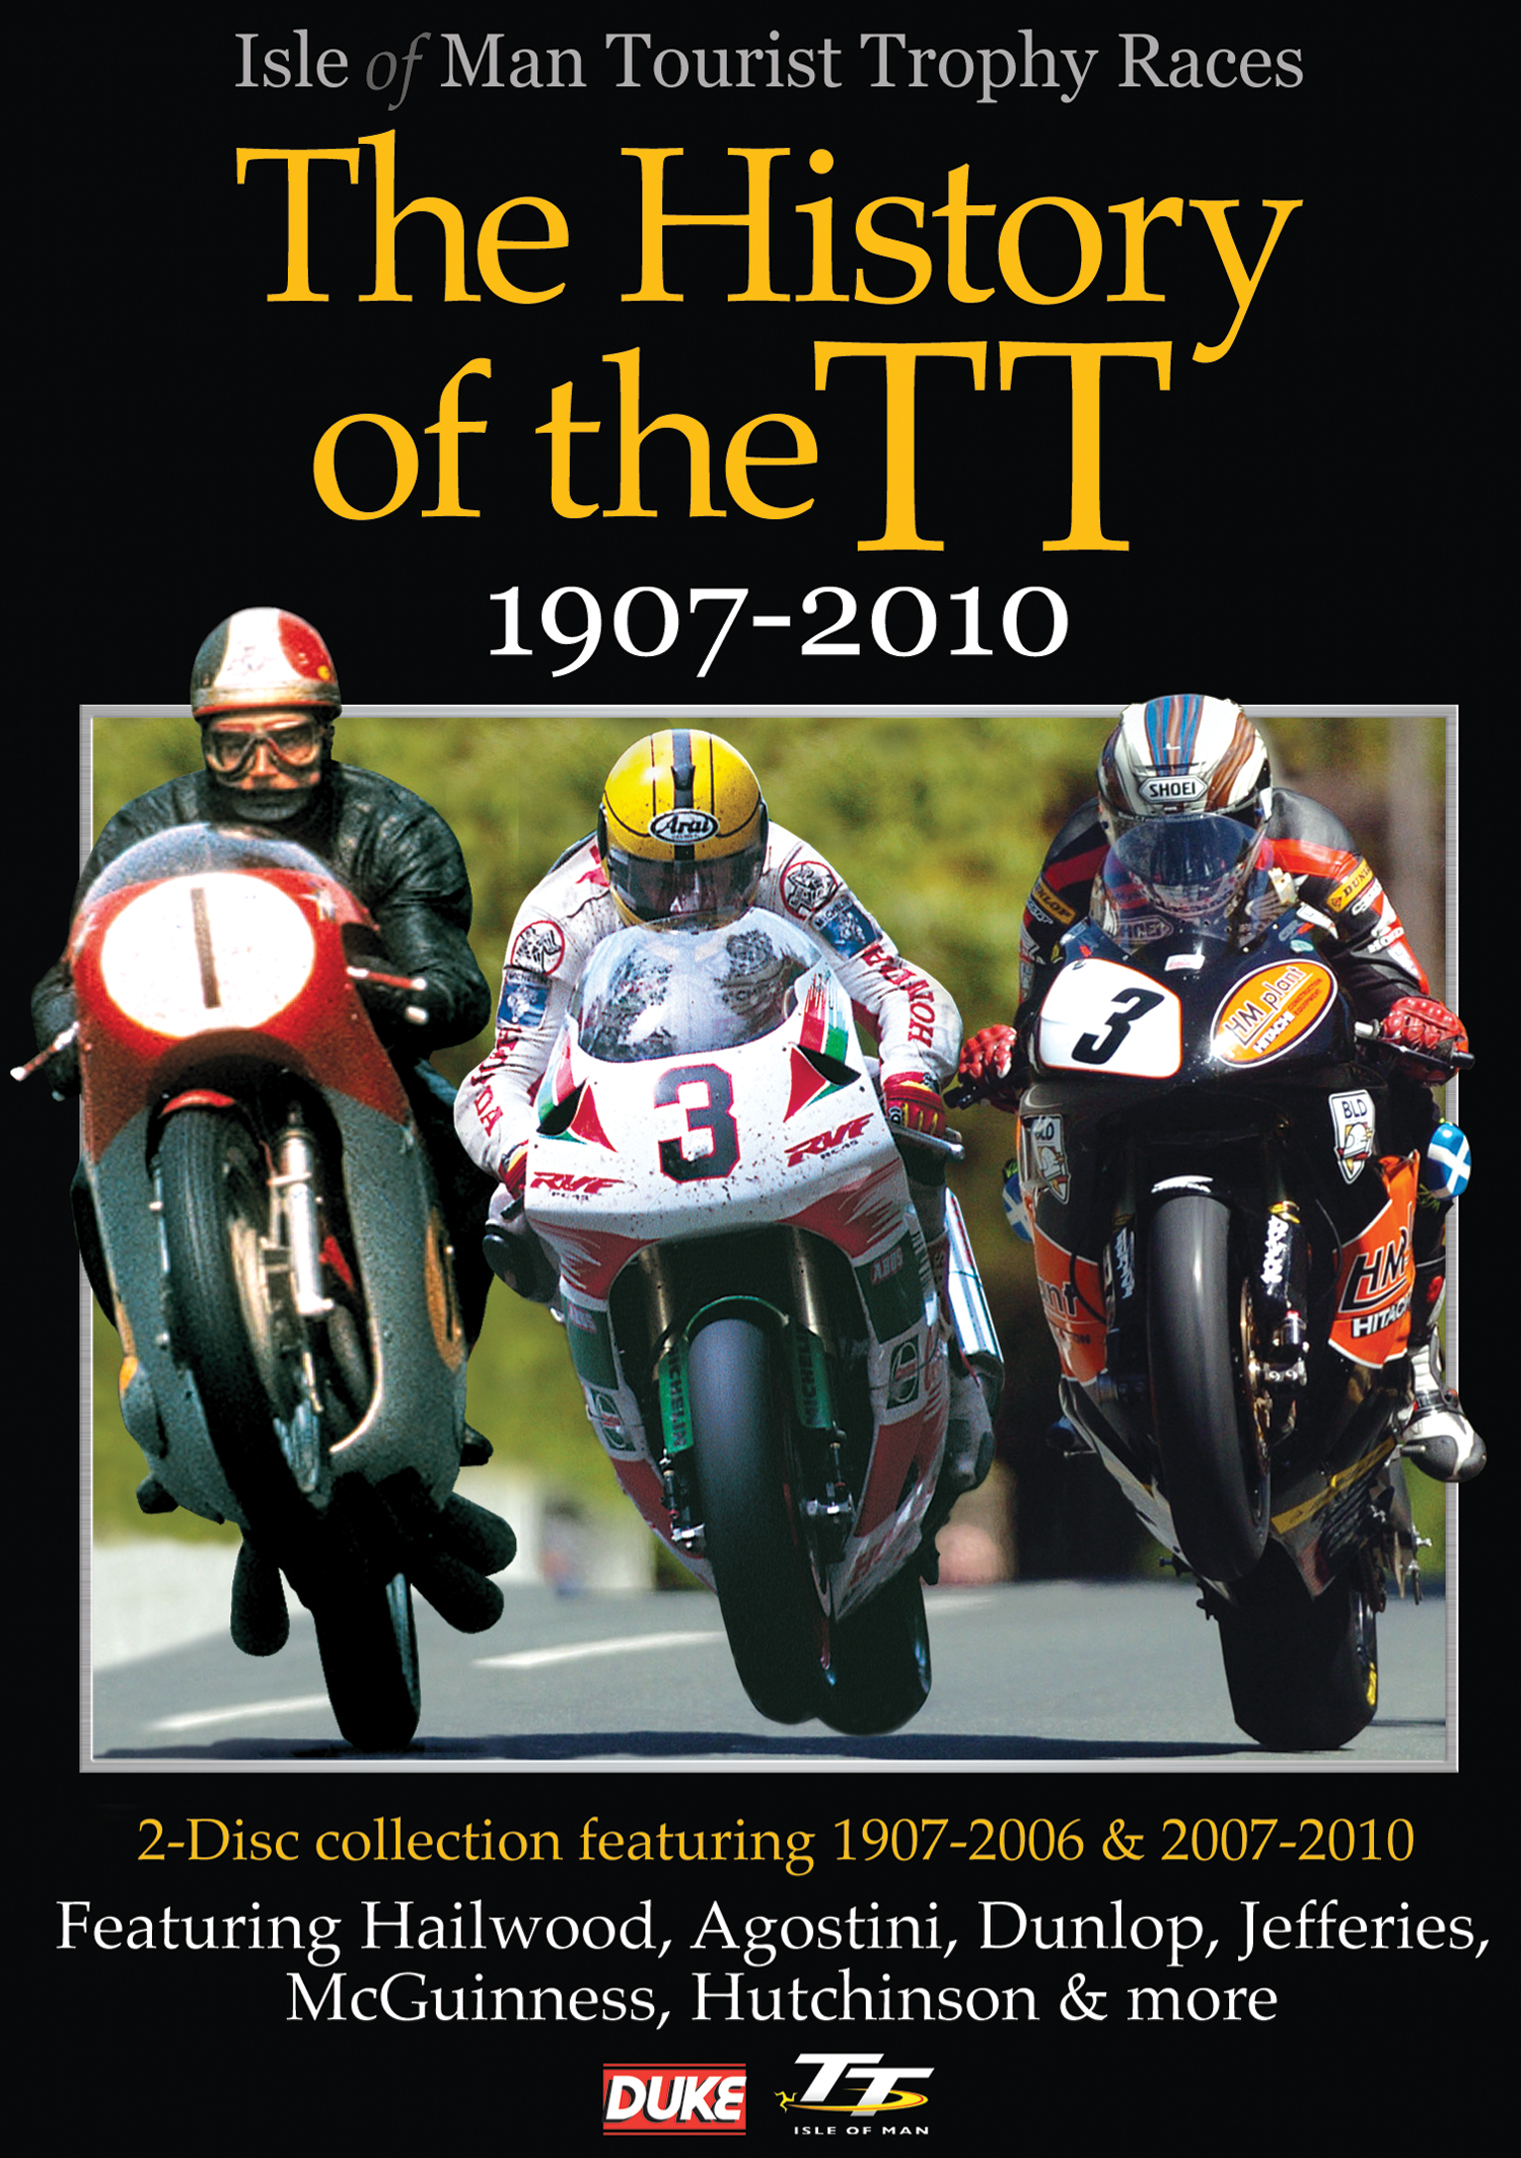 The History of the TT: 1907-2010